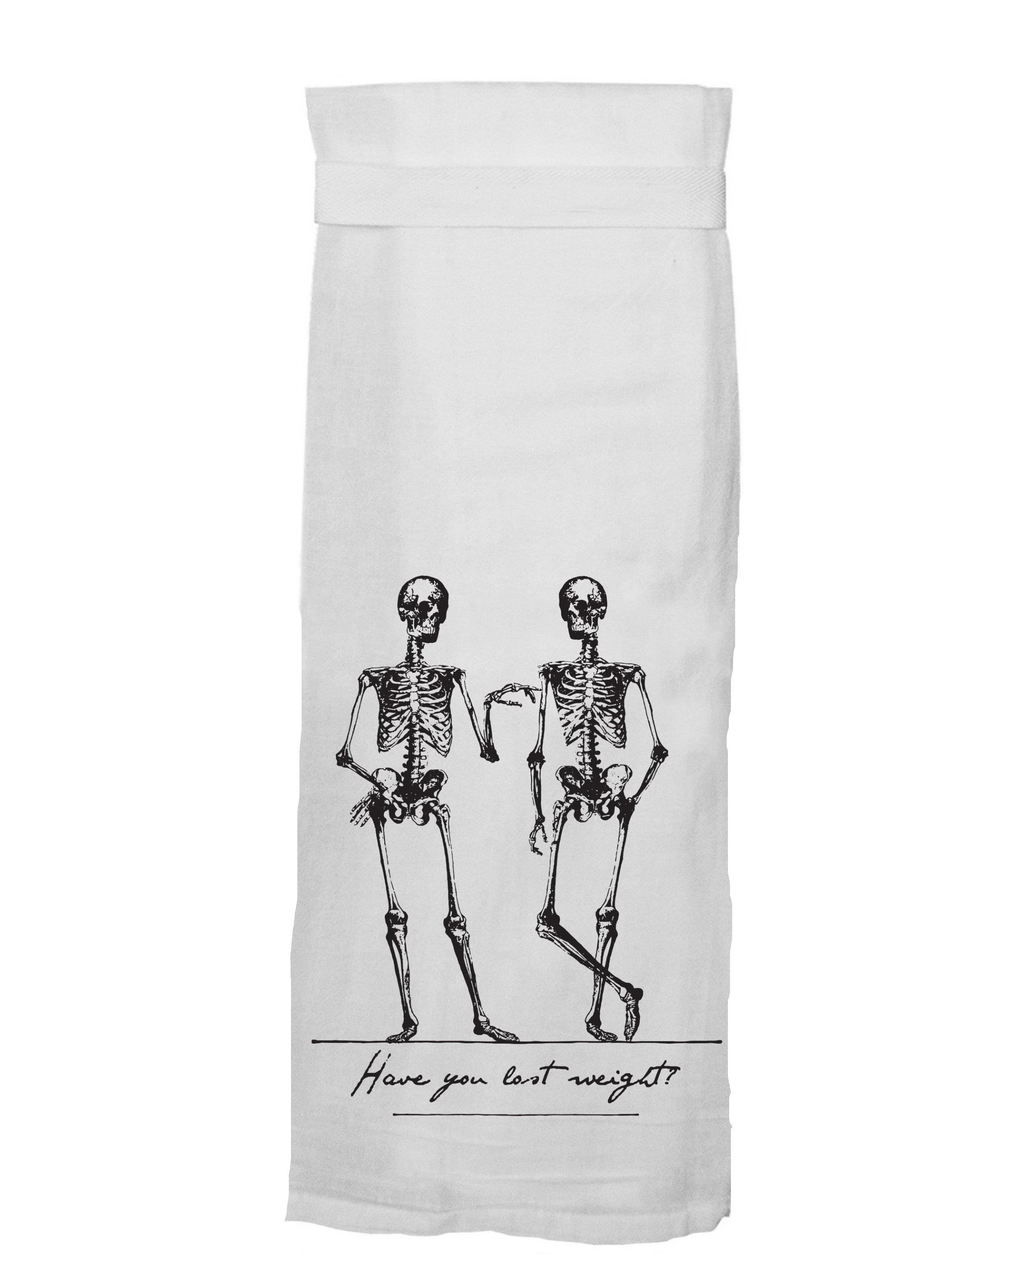 """Lost Weight"" Flour Sack Hang Tight Towel"